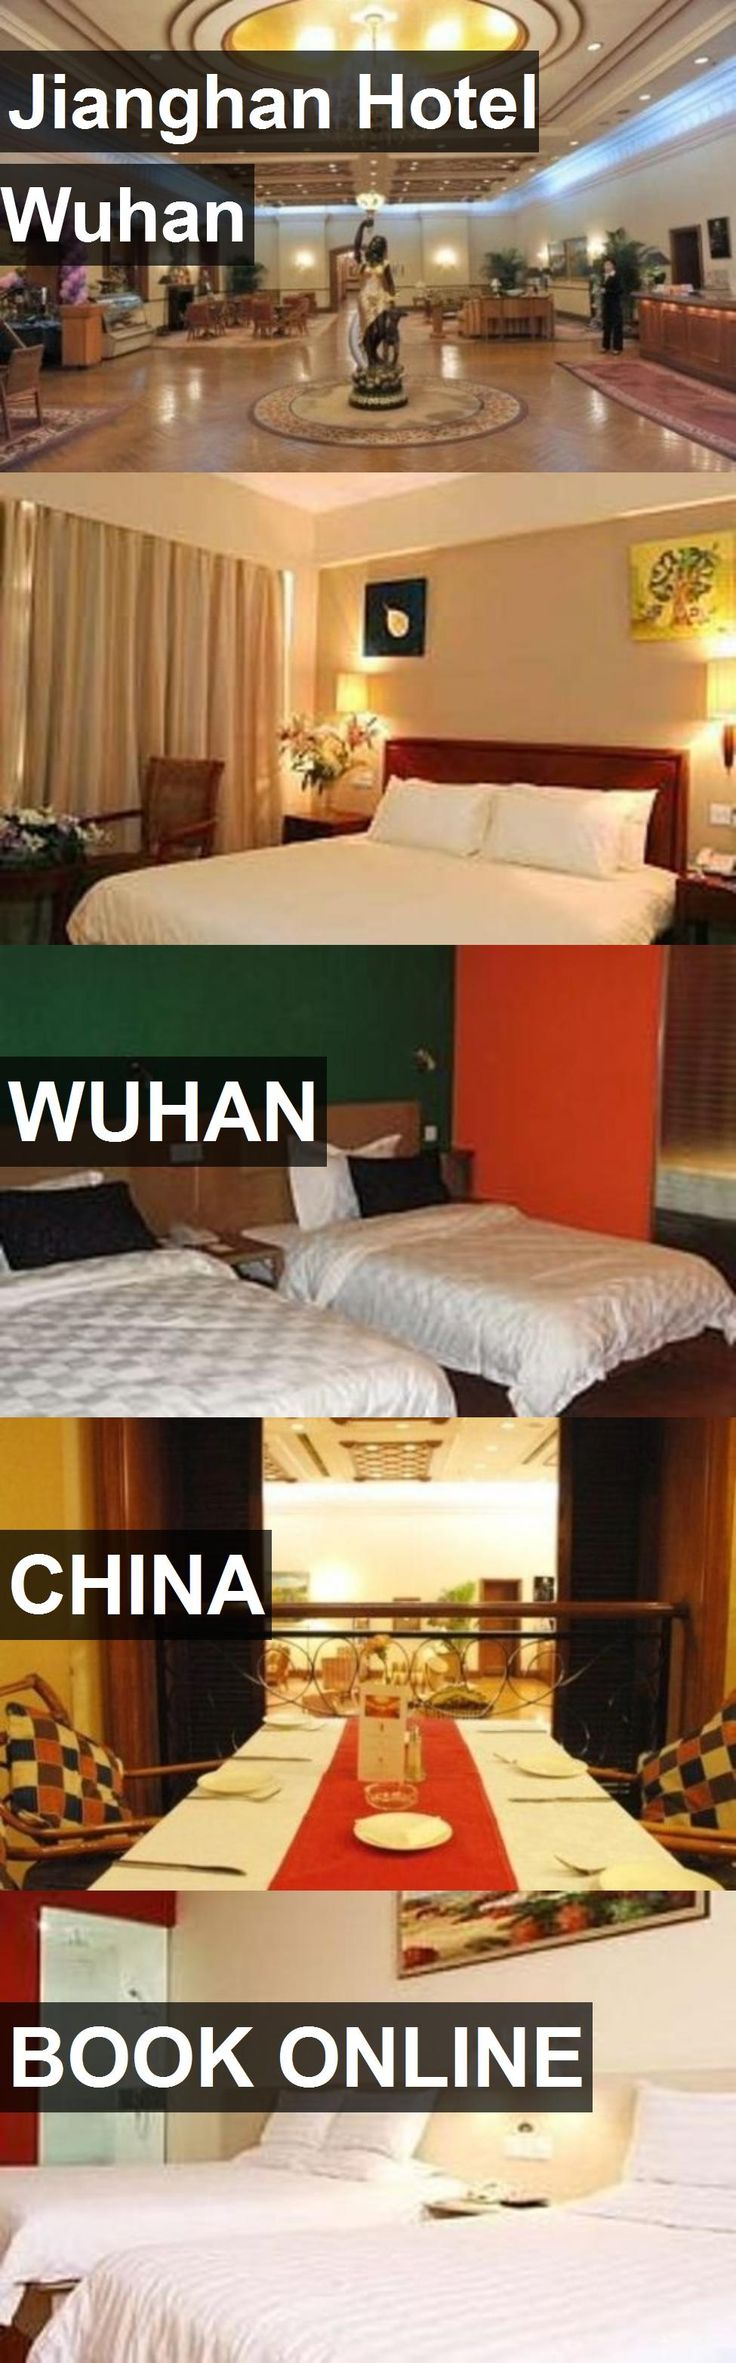 Hotel Jianghan Hotel Wuhan in Wuhan, China. For more information, photos, reviews and best prices please follow the link. #China #Wuhan #JianghanHotelWuhan #hotel #travel #vacation